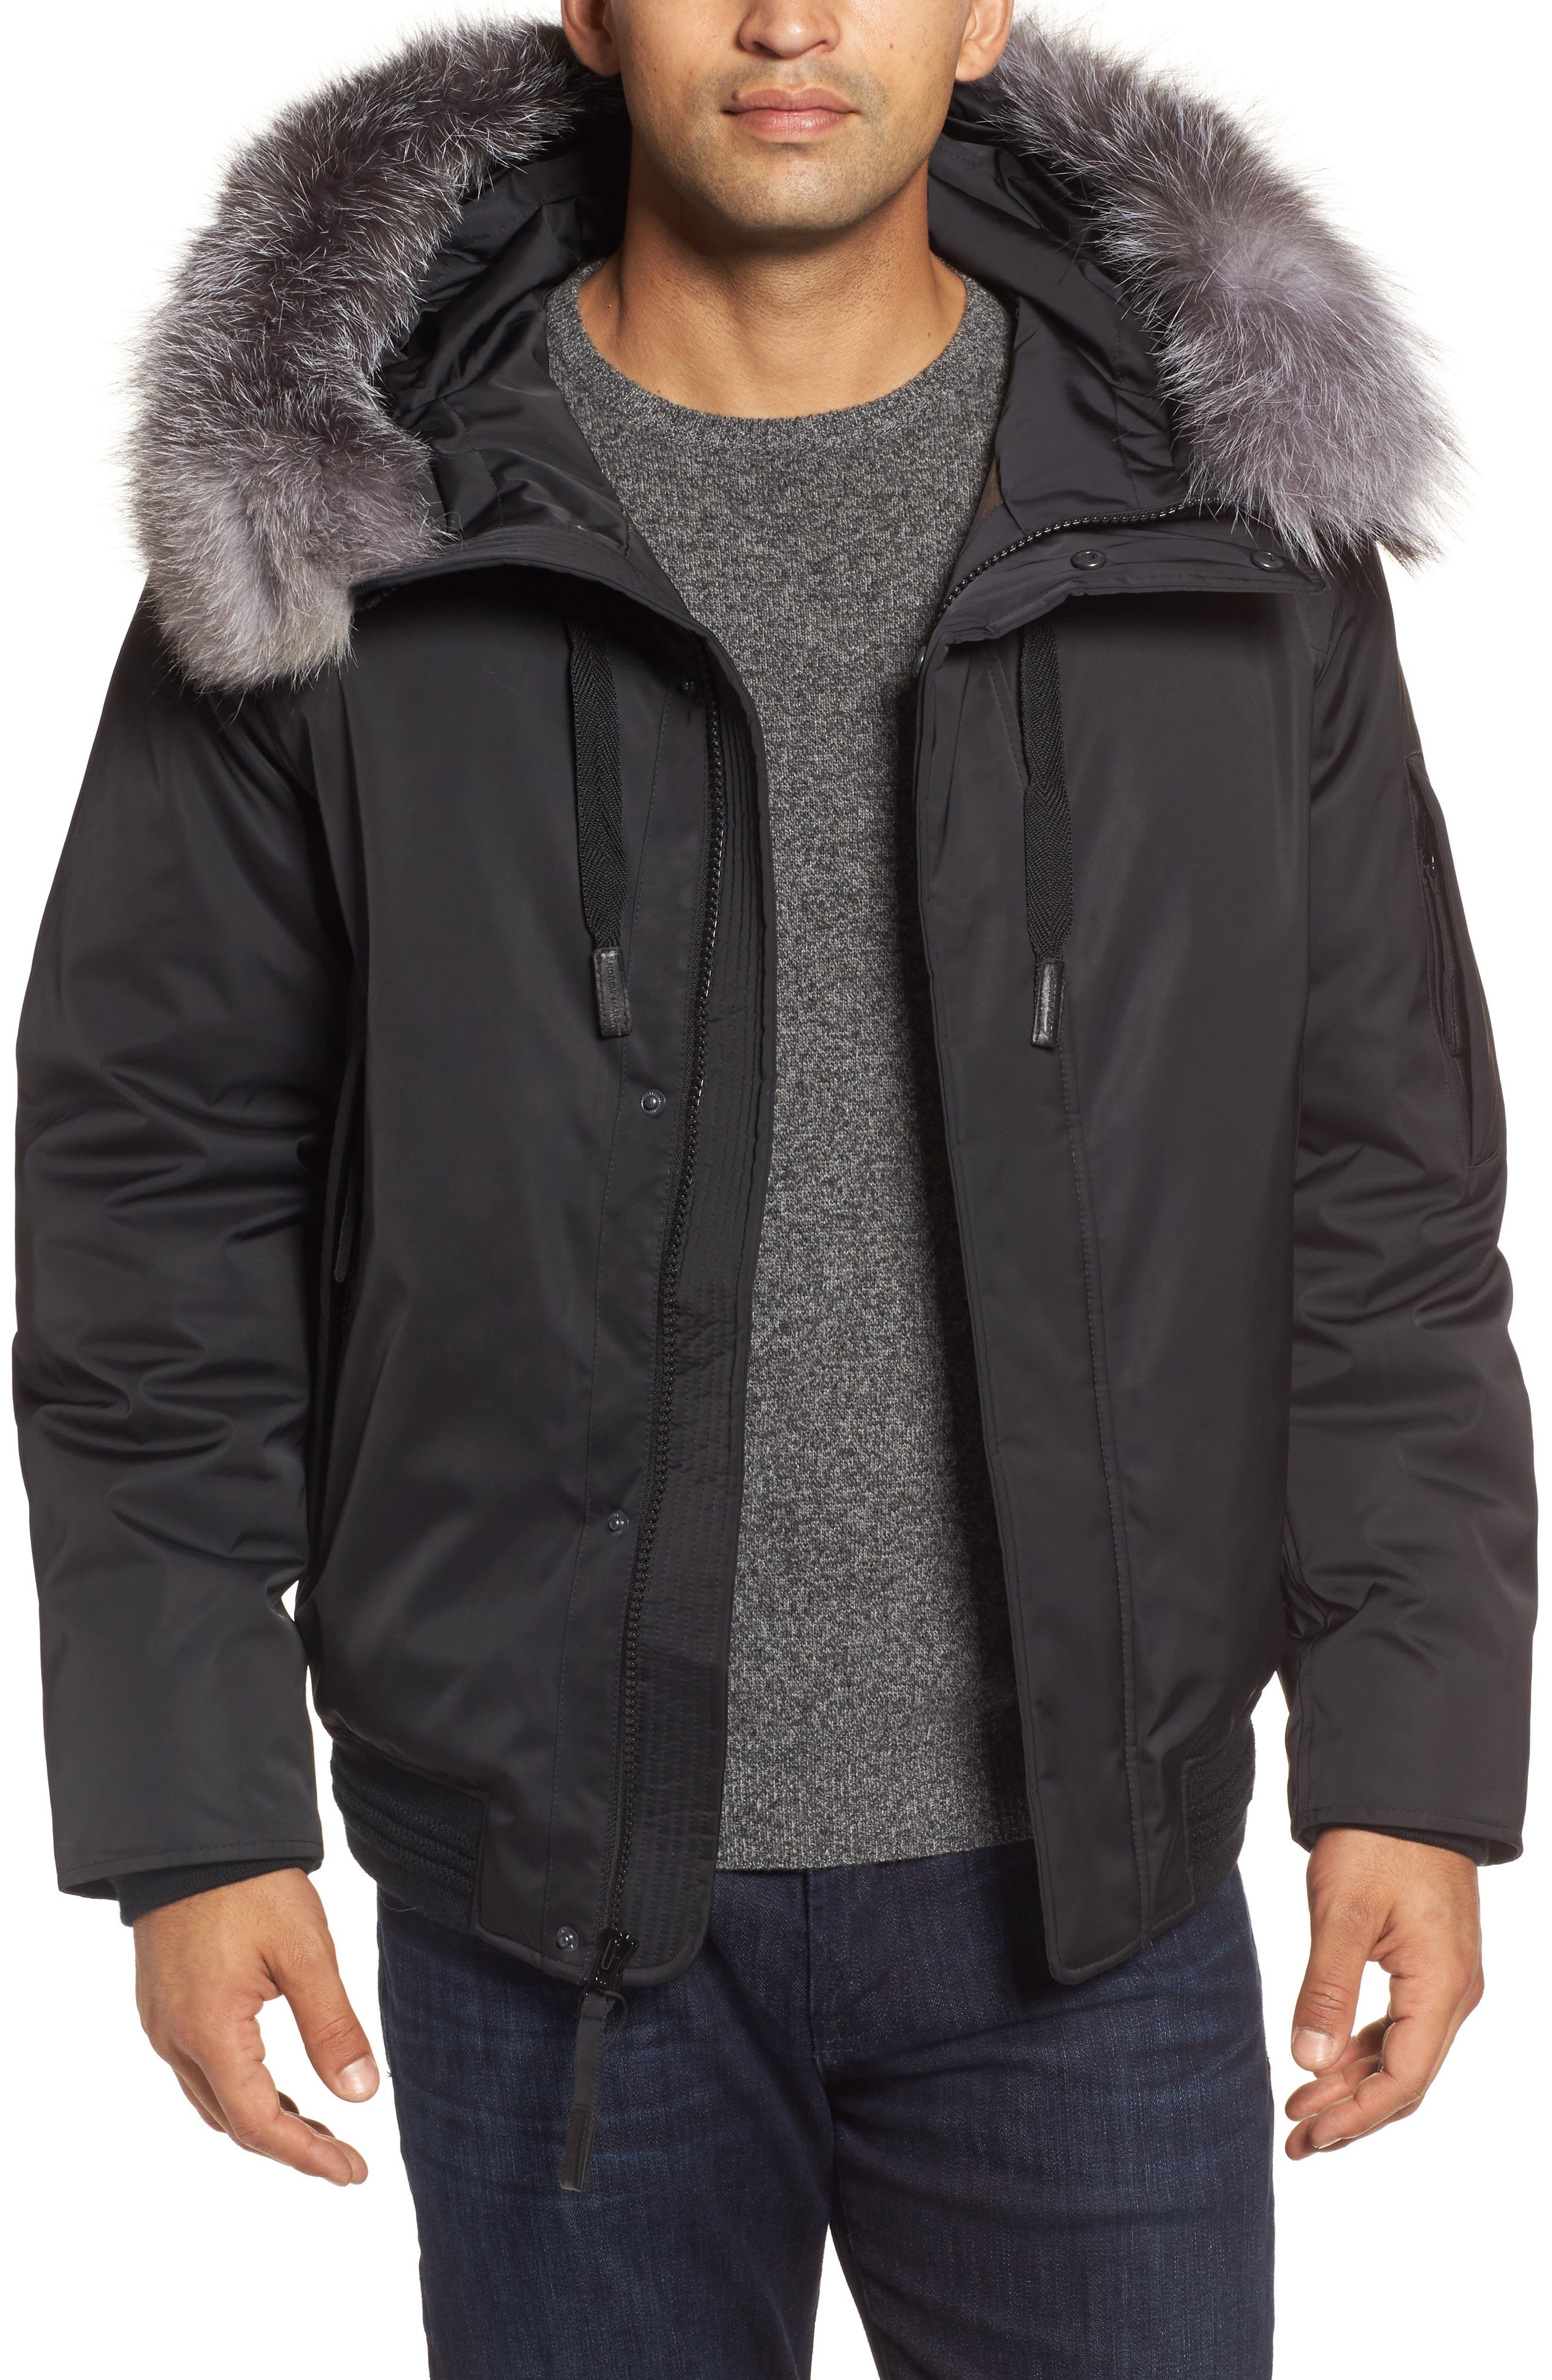 Andrew Marc Bomber Jacket with Genuine Fox Fur Trim